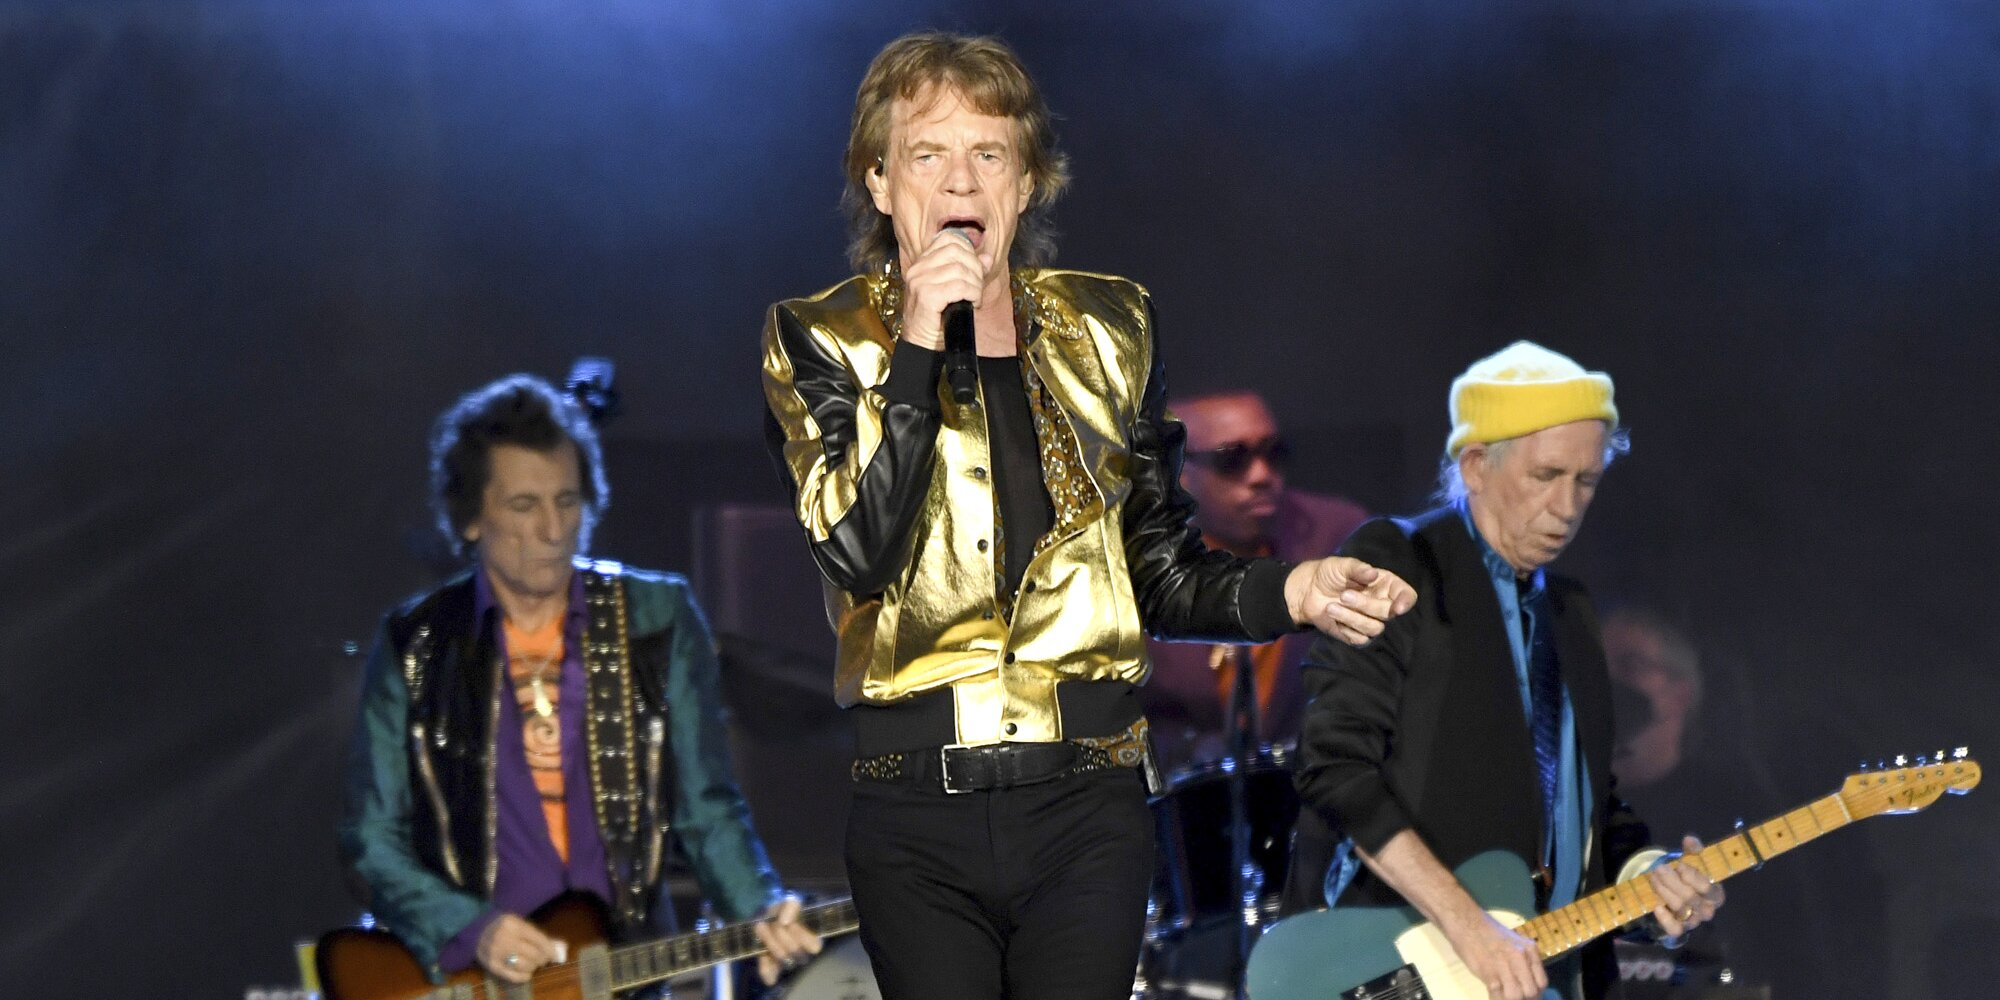 10 things you see at a Rolling Stones show in 2021